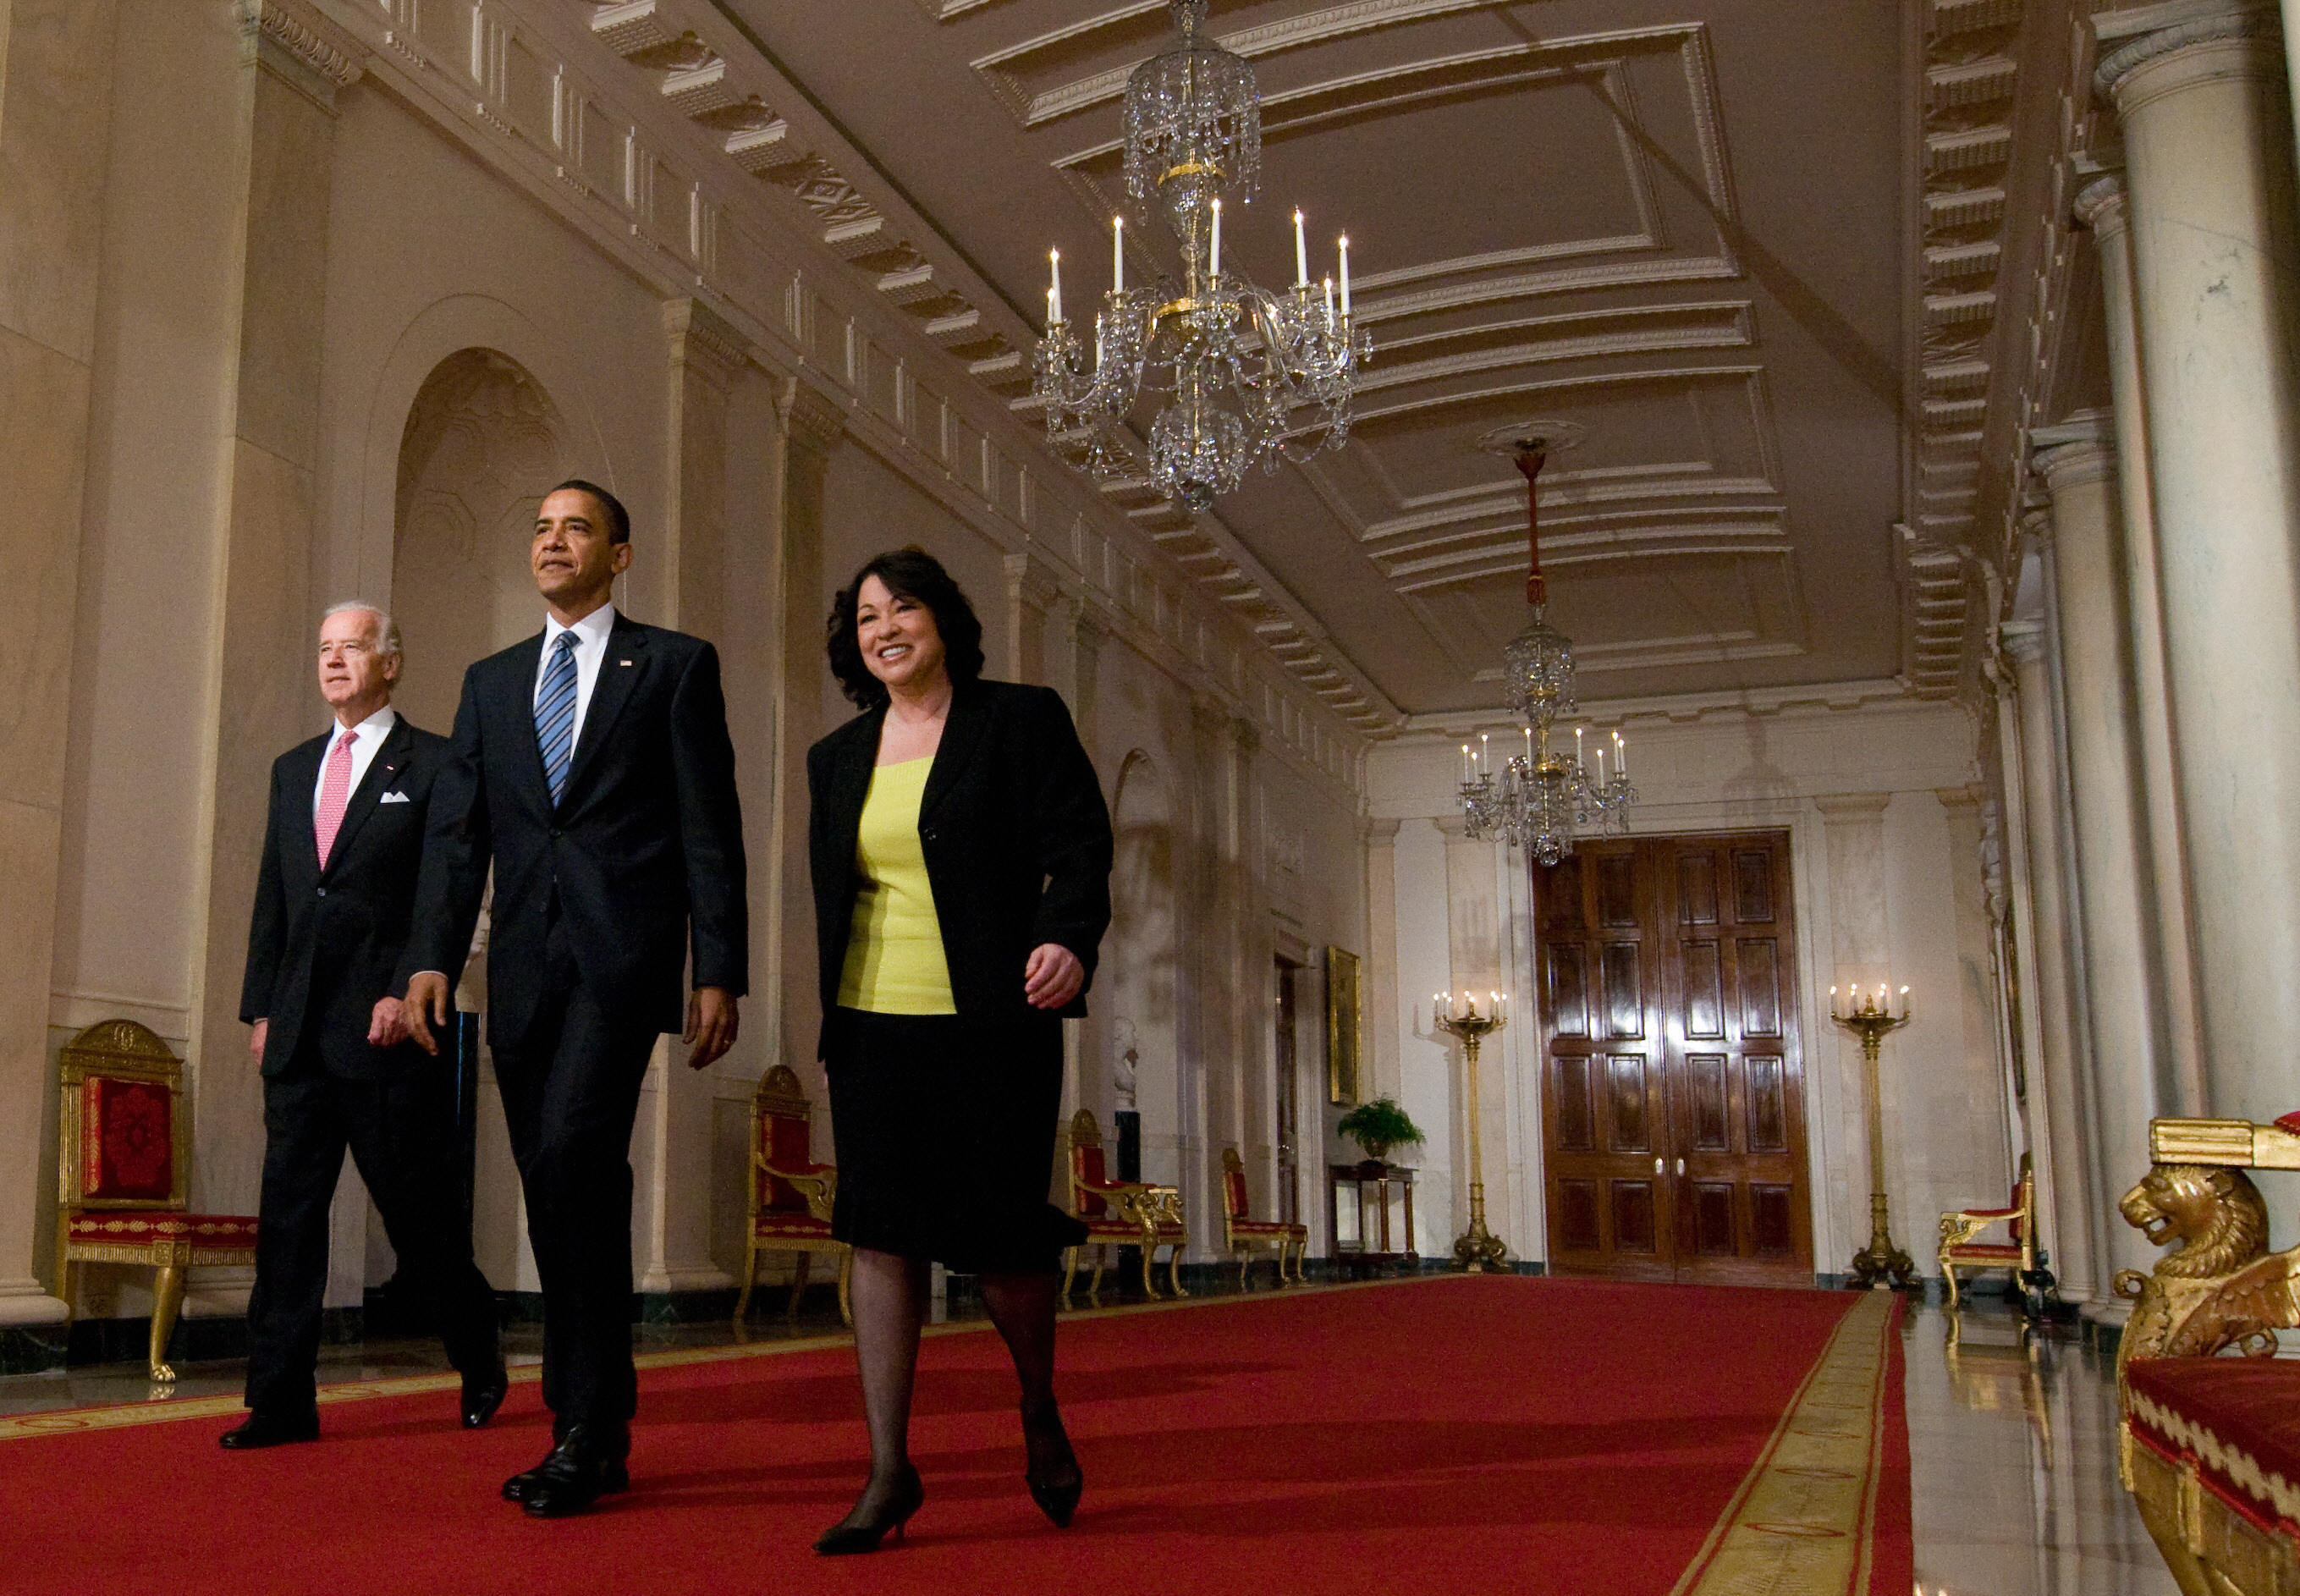 President Obama walks with Sotomayor and Vice President Joe Biden at the White House before introducing her as his nominee to the Supreme Court in 2009.